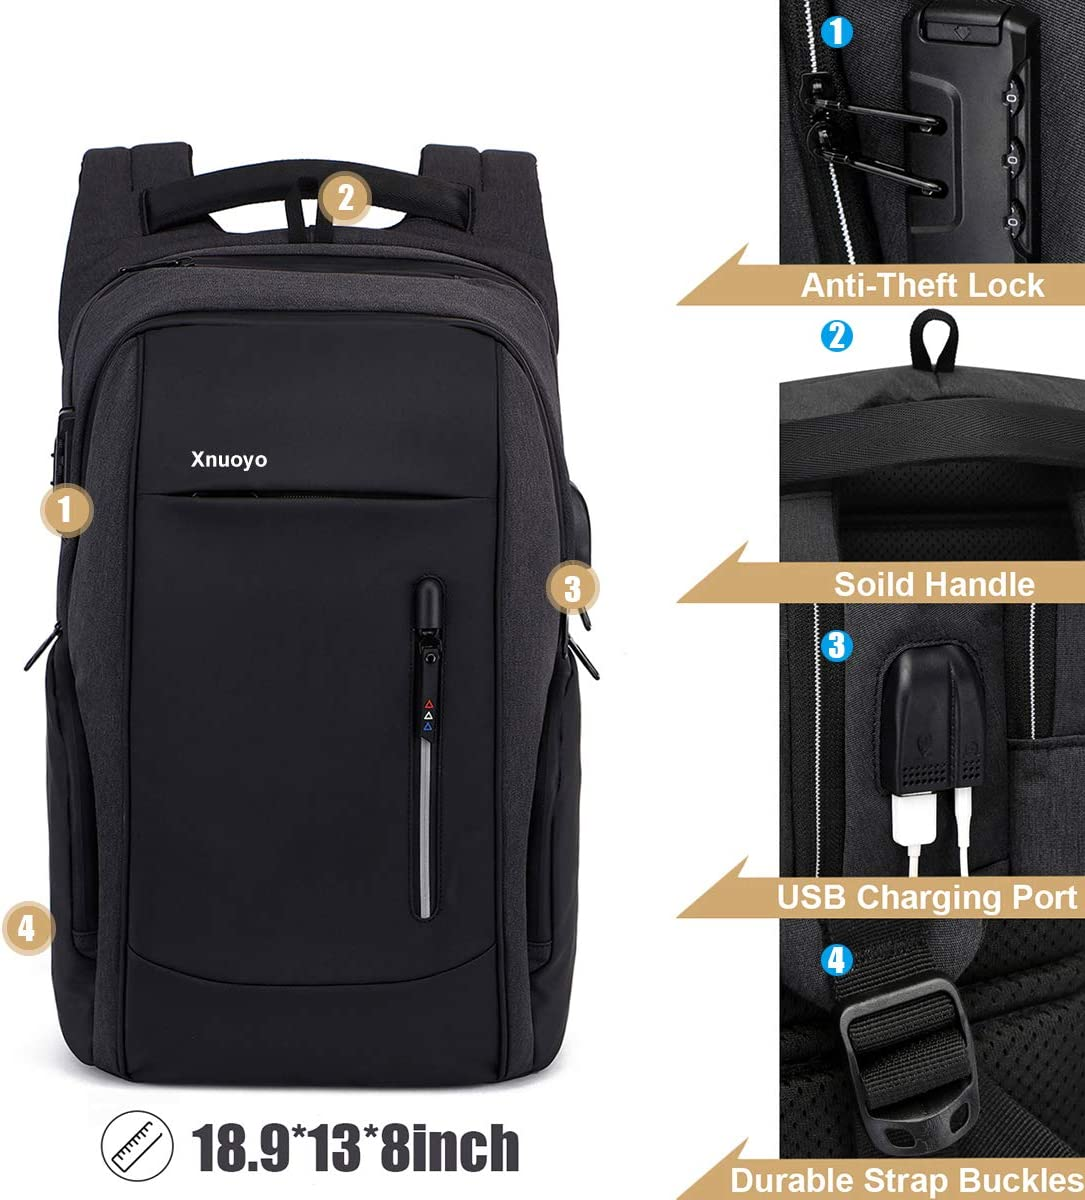 Water Resistant College School Computer Bag for Women Men Black 15.6 Inch Business Anti Theft Lock Slim Durable Laptops Backpack with USB Charging Port Headphone Hole Xnuoyo Travel Laptop Backpack